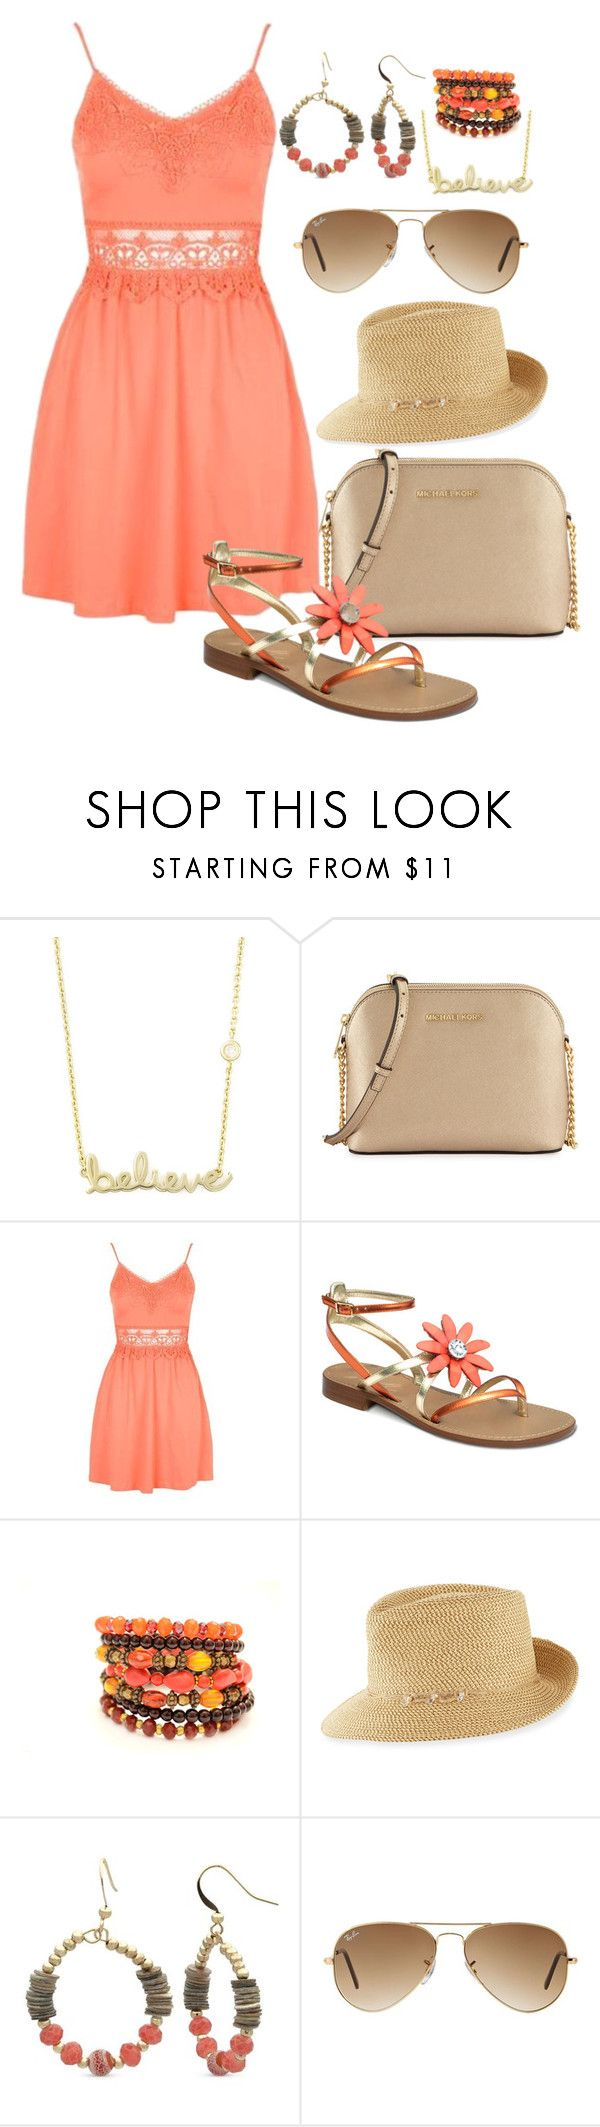 """""""Summer Day"""" by reneta222 ❤ liked on Polyvore featuring beauty, Sydney Evan, MICHAEL Michael Kors, Topshop, Eric Javits, Kim Rogers and Ray-Ban"""